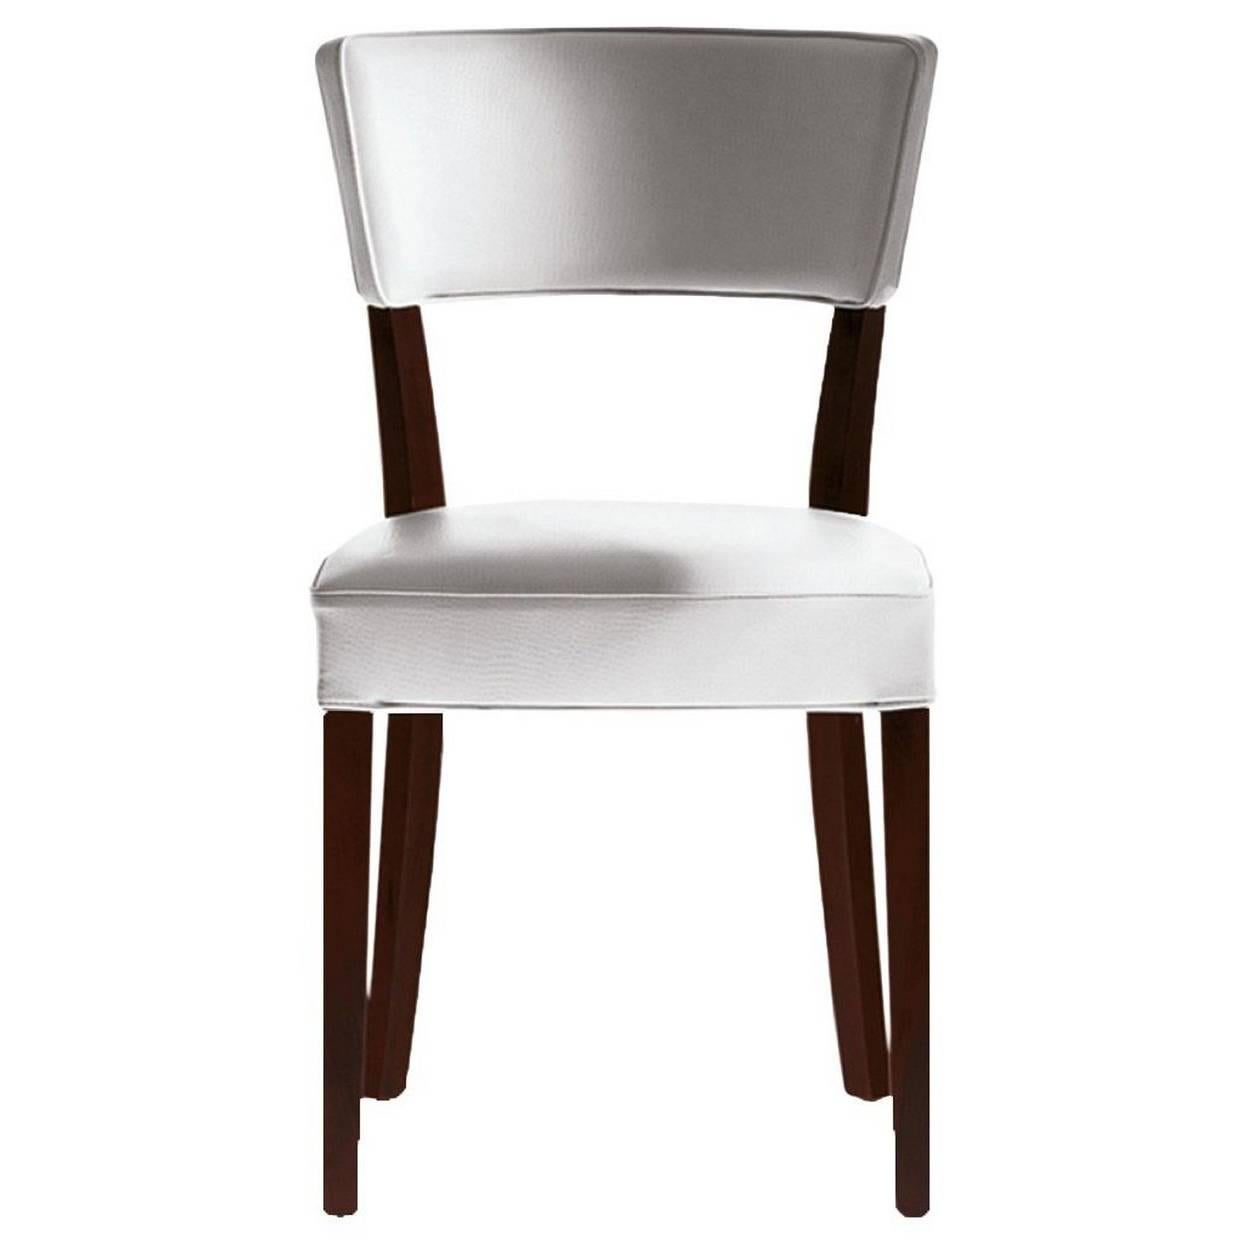 Aluminium Hudson Chair By Philippe Starck For Emeco For Sale At ...